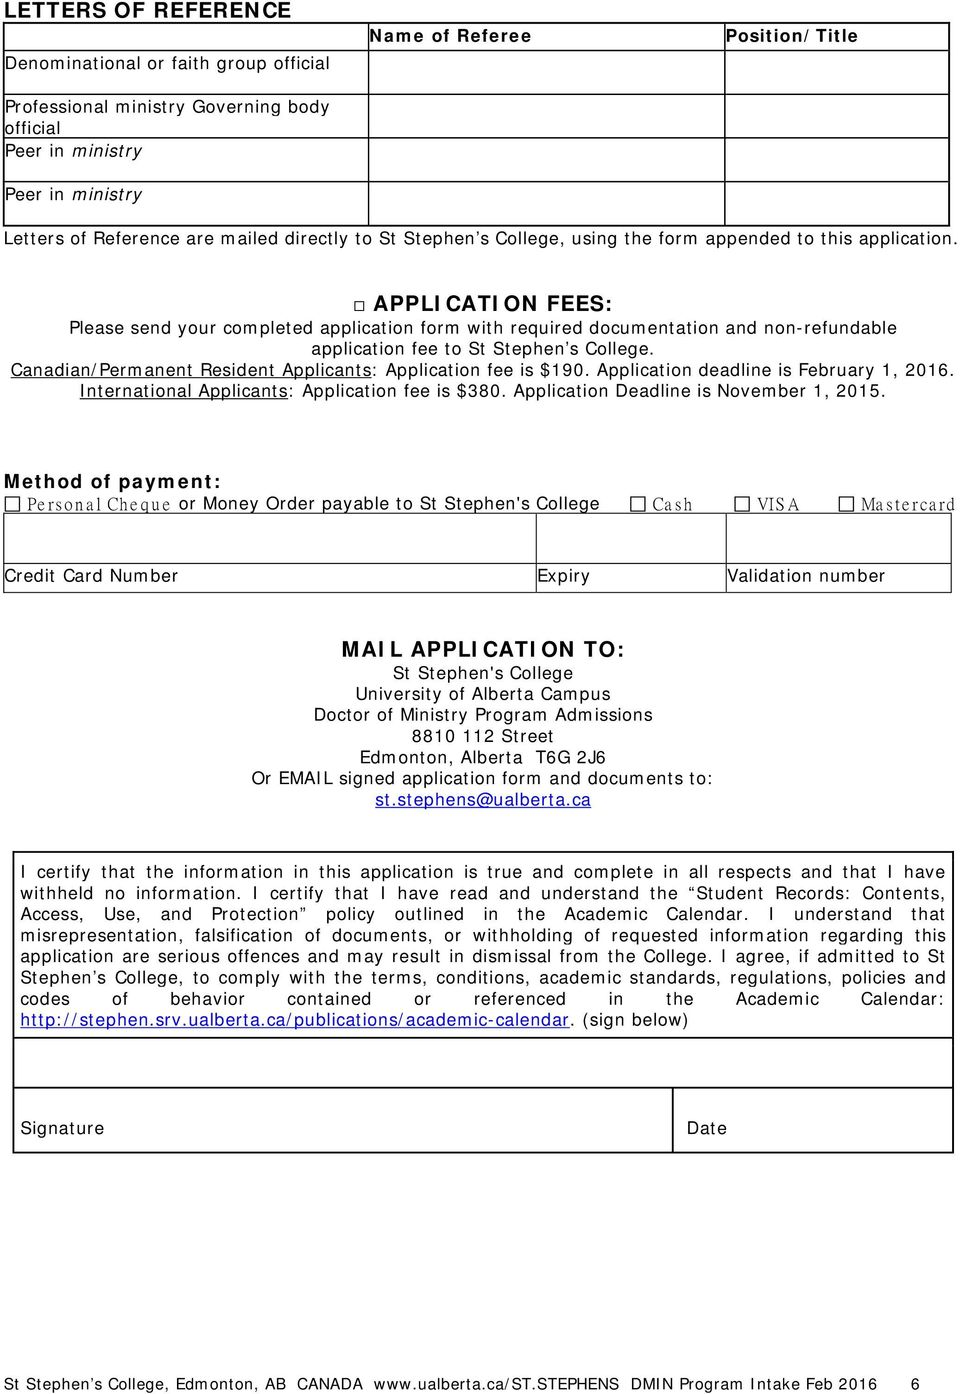 APPLICATION FEES: Please send your completed application form with required documentation and non-refundable application fee to St Stephen s College.